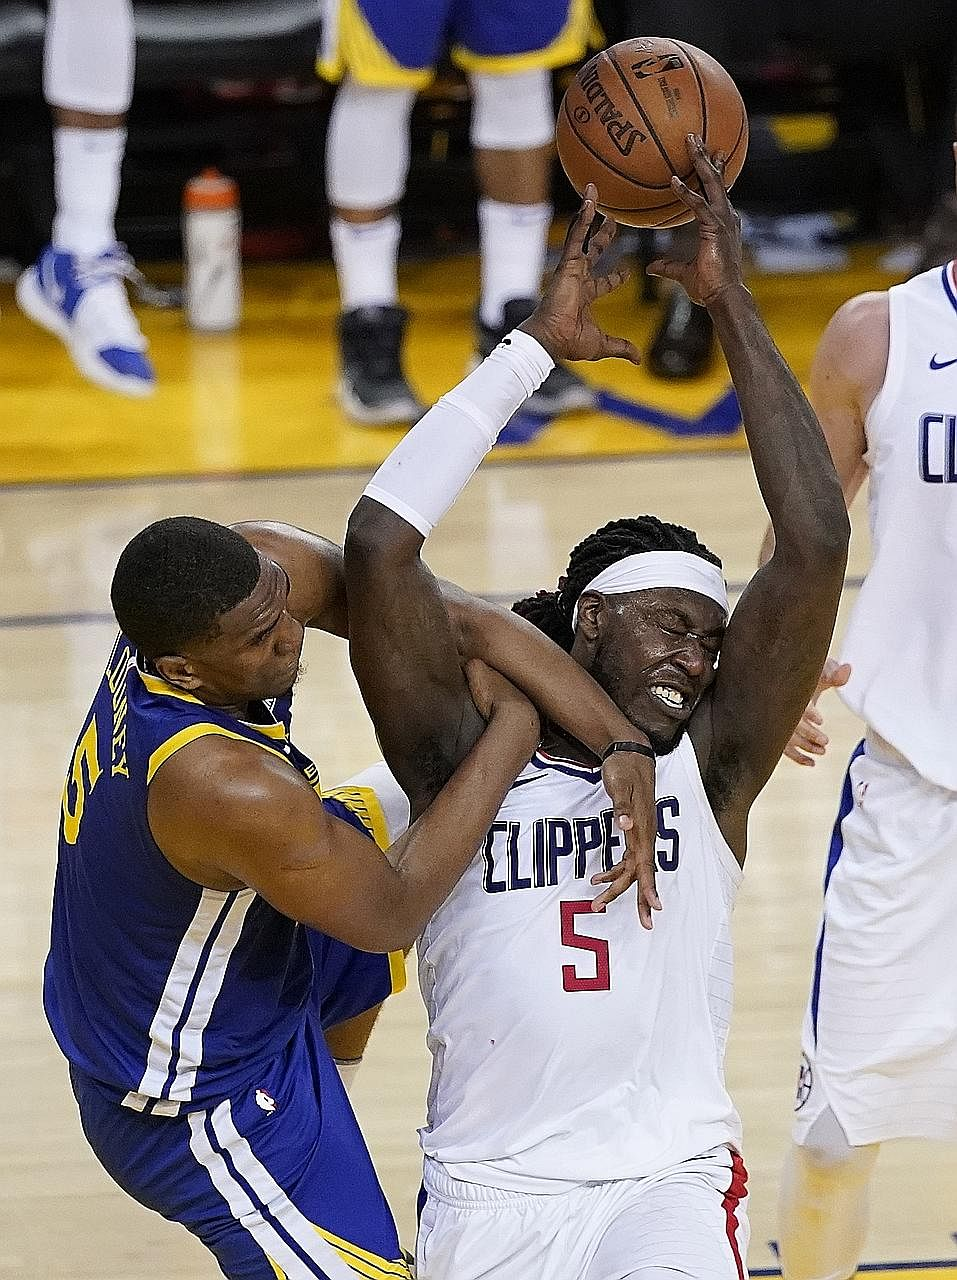 Los Angeles Clippers forward Montrezl Harrell and Golden State Warriors centre Kevon Looney tussling for the ball during Game 5 of their NBA play-off first-round series. The Clippers won 129-121 to claw the series back to 3-2 and force Game 6 today i